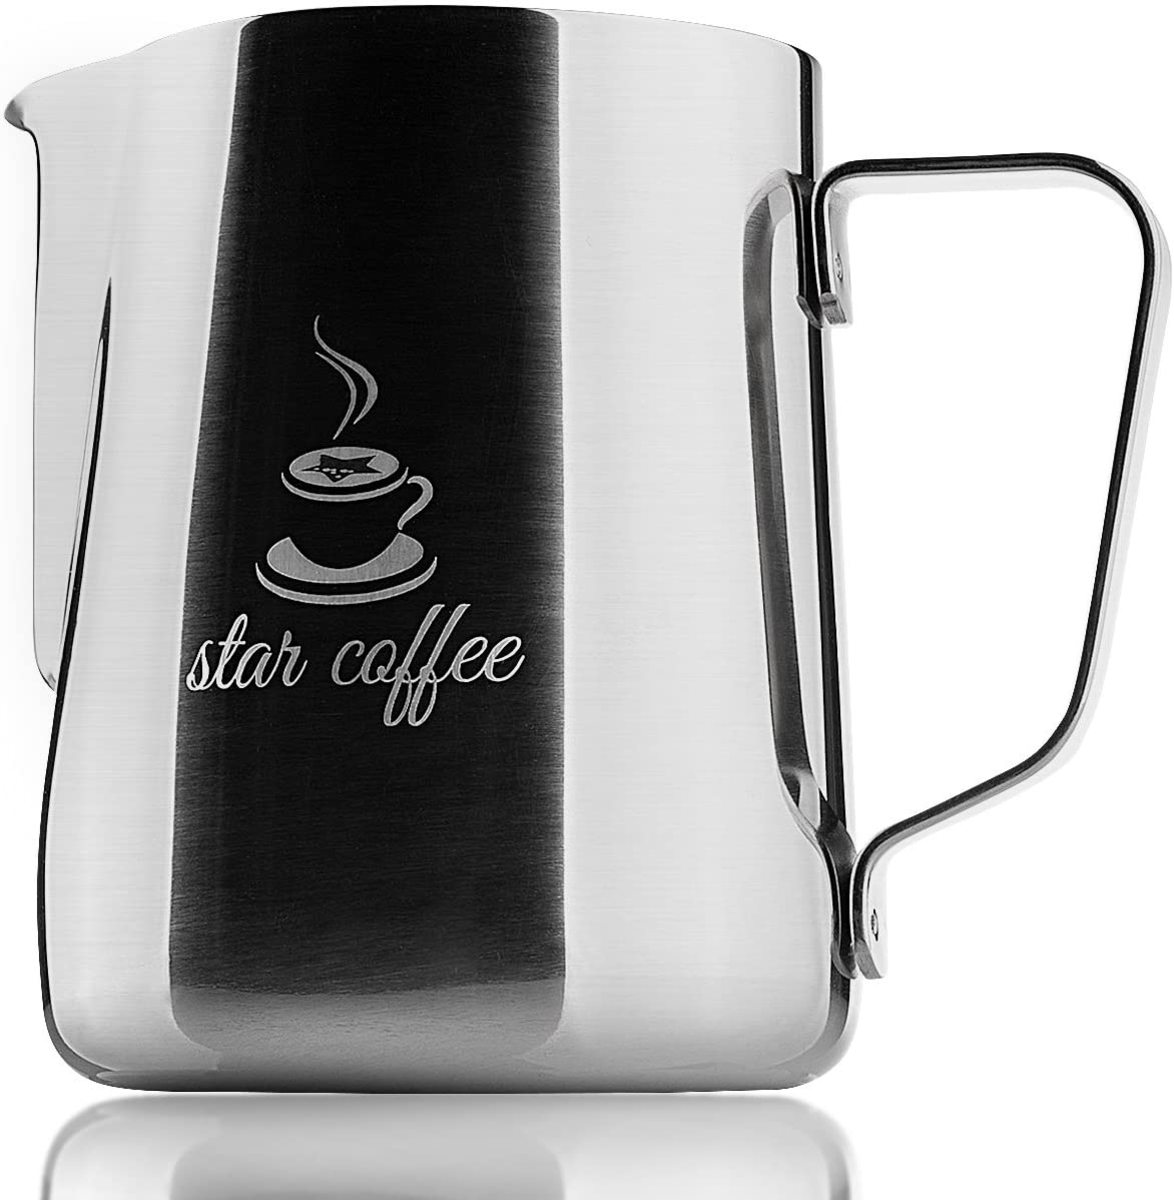 Star Coffee 20, 12 or 30oz Stainless Steel Milk Frothing Pitcher.